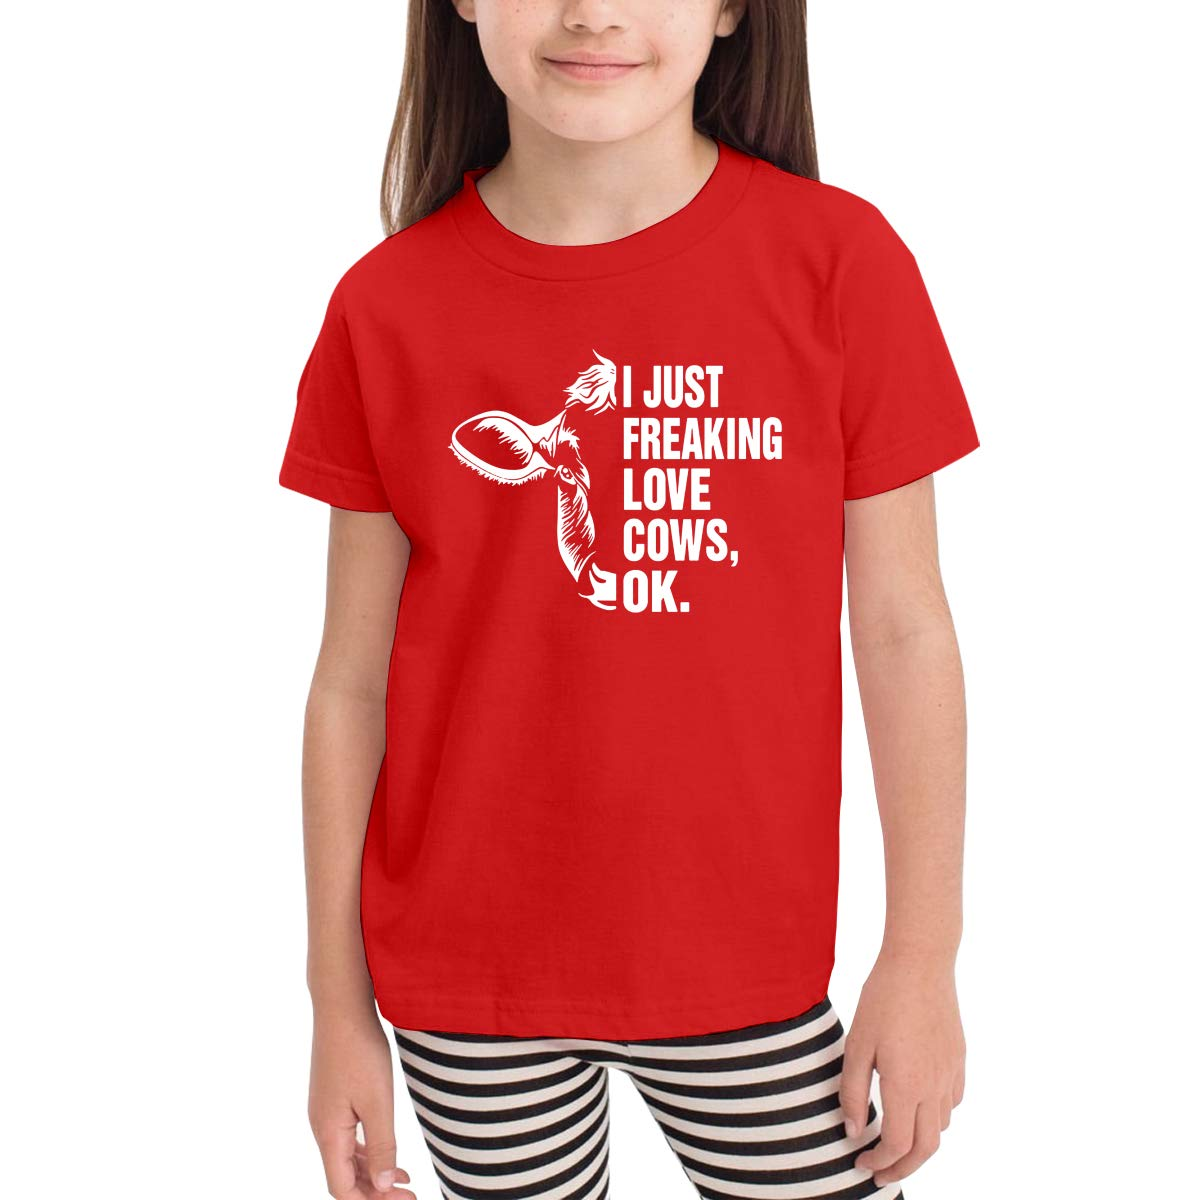 Ok Unisex Youths Short Sleeve T-Shirt Kids T-Shirt Tops Black I Just Freaking Love Cows